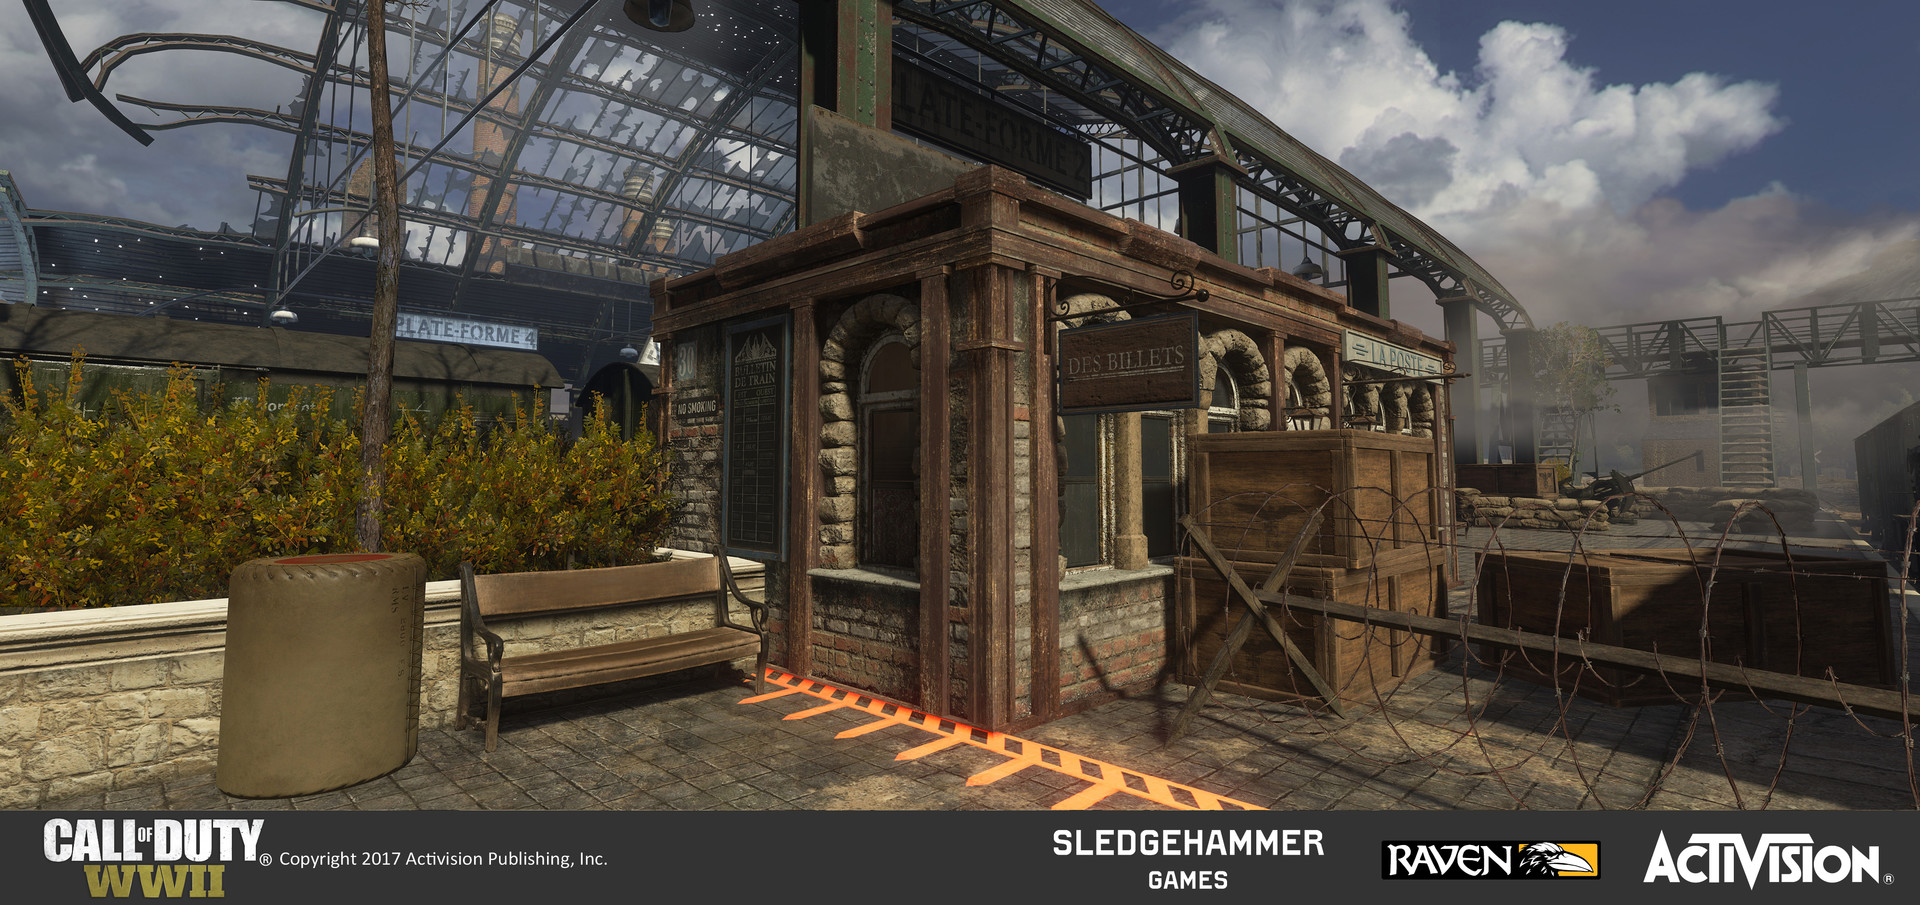 This is a ticket booth structure I created for use in several places in the Train Station. I created the geo using pre-existing materials arranged in a unique treatment and I added the stoned arch windows I made to stylistically match the train station.